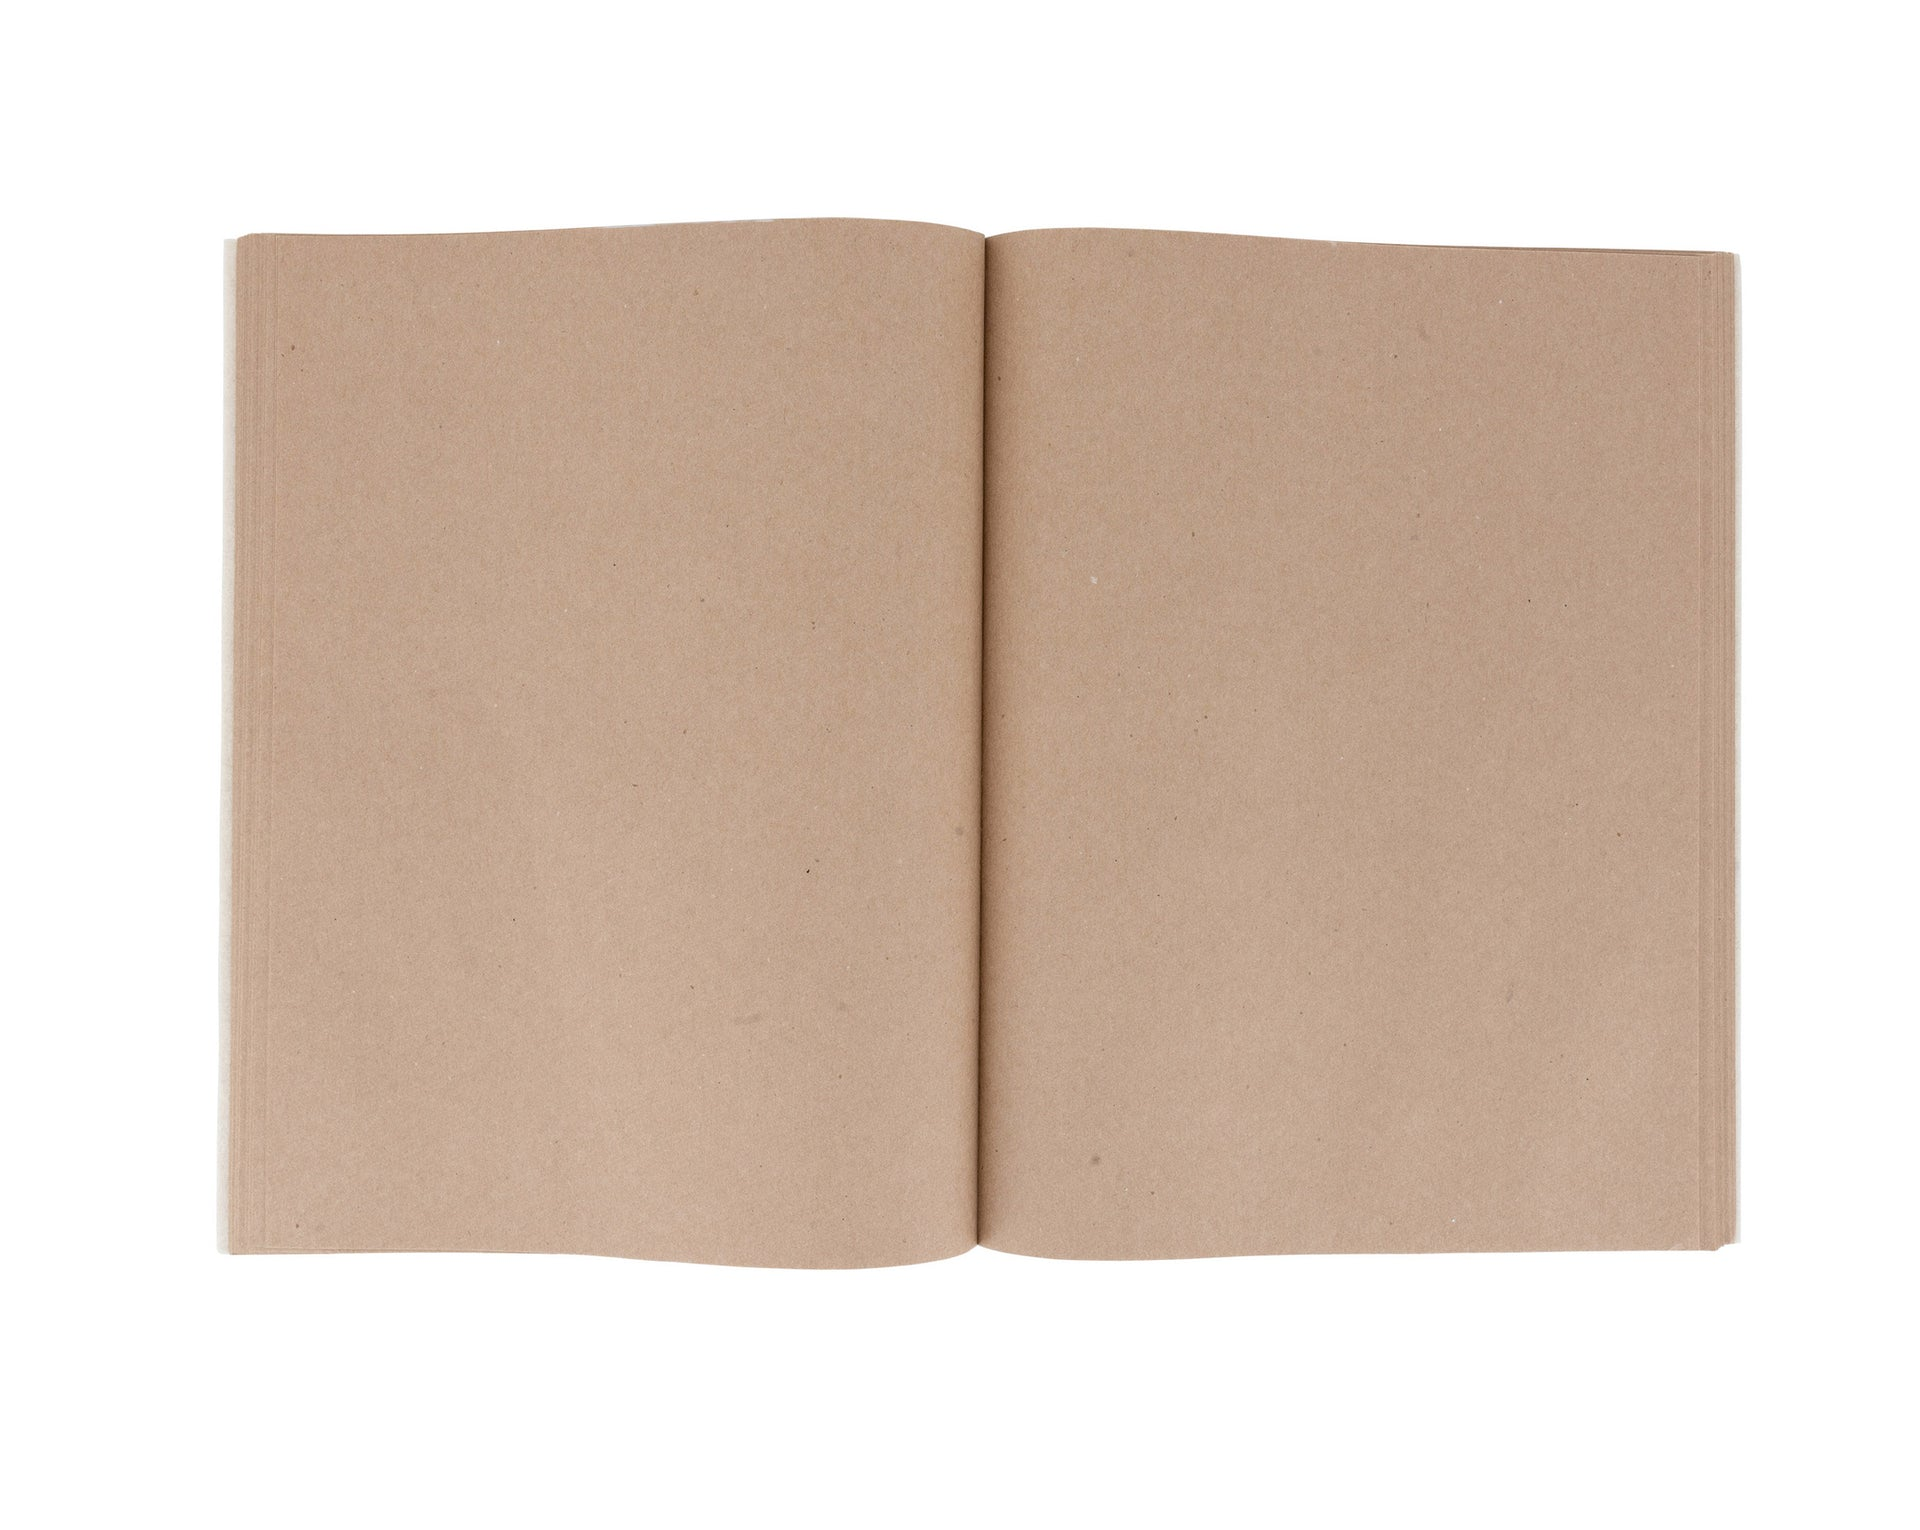 KANTA STICHED BROWN PAPER SKETCH BOOK (INITIAL)